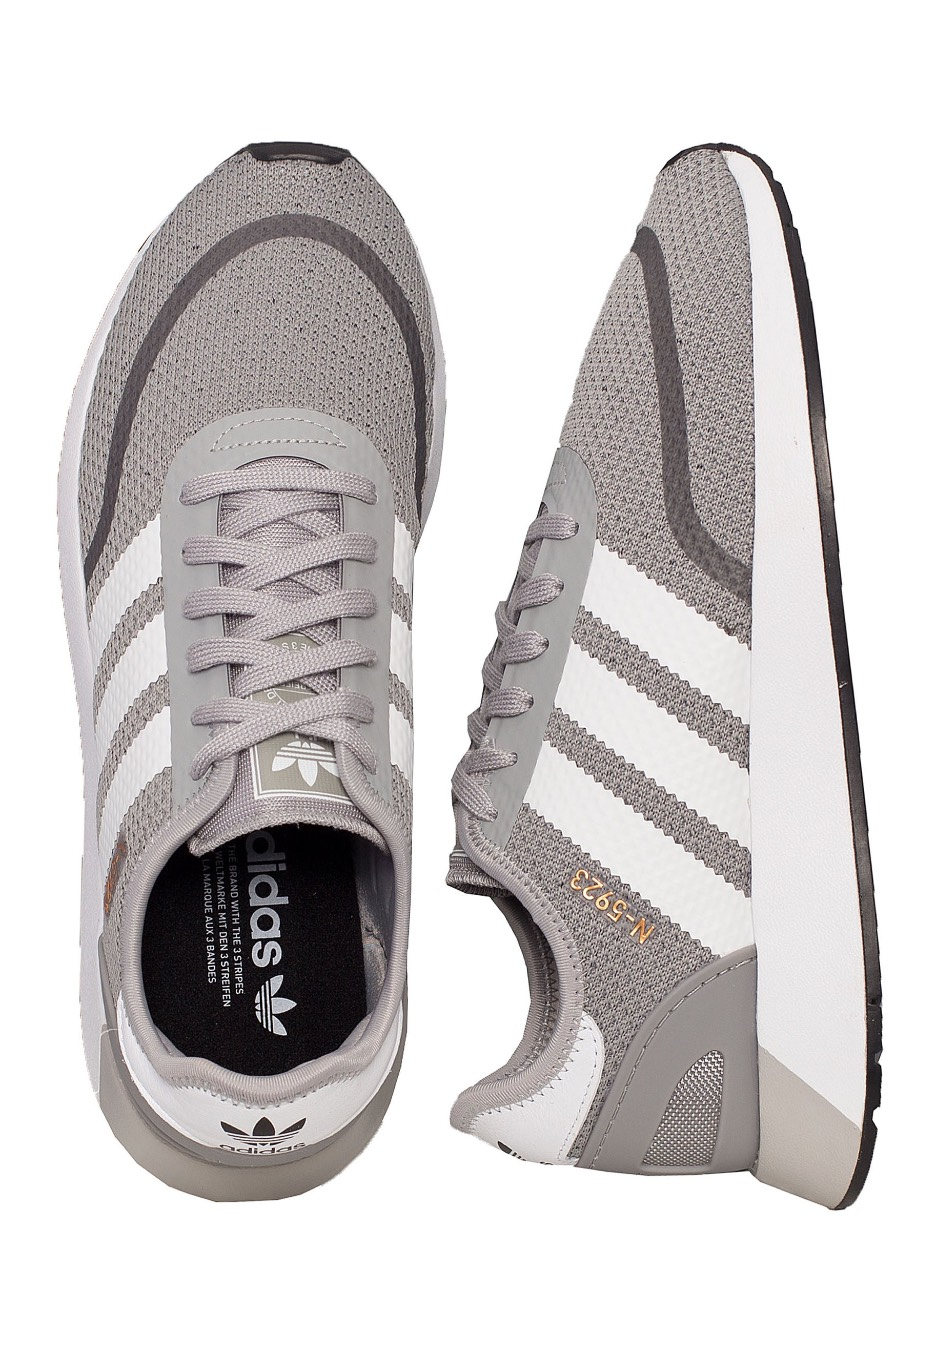 Adidas - N-5923 Solid Grey Ftw White Core Black - Shoes - Impericon.com  Worldwide 8bf2176002a8e